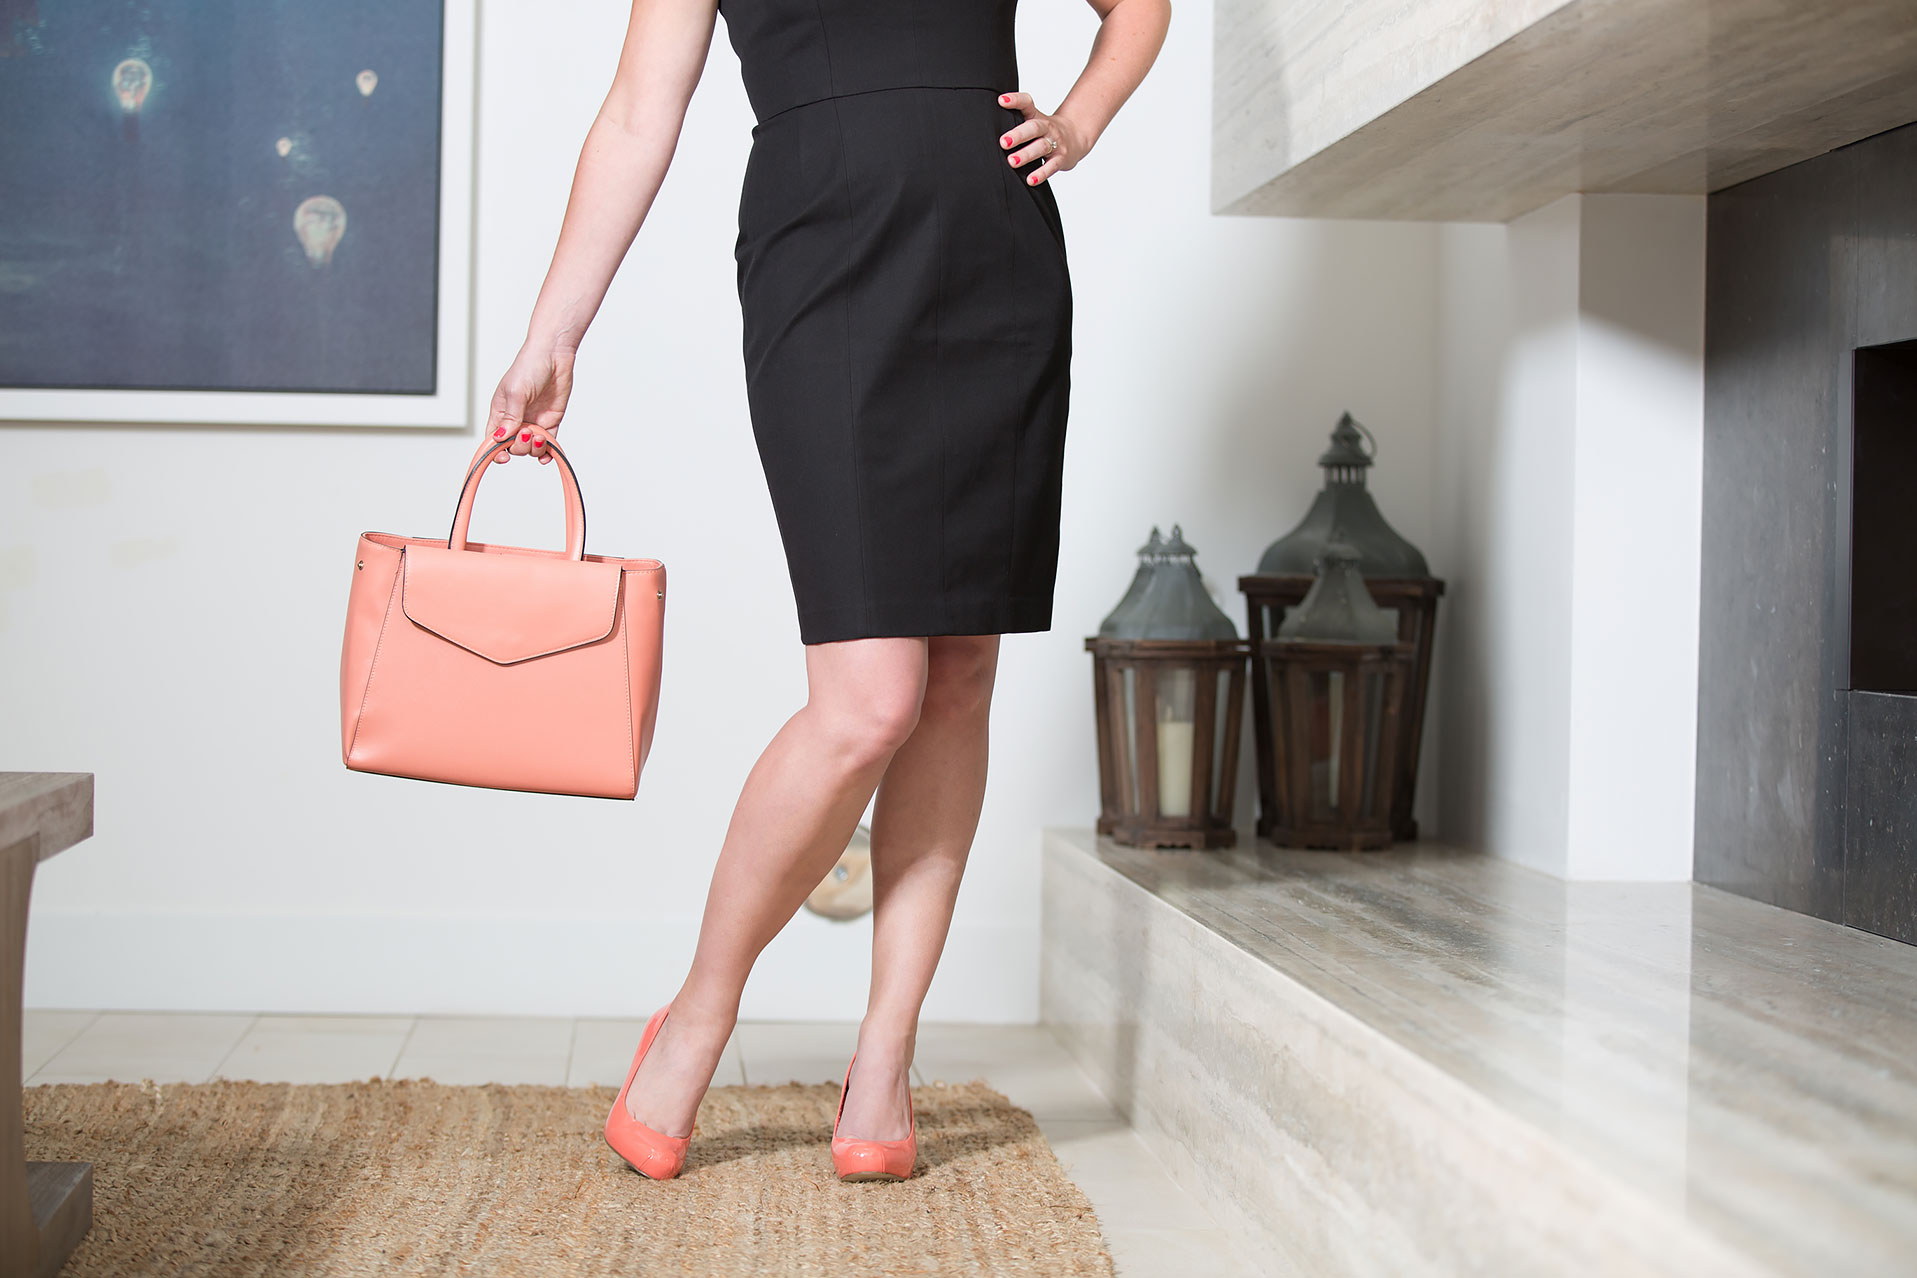 How To Have Five Days of Office Style On a Budget